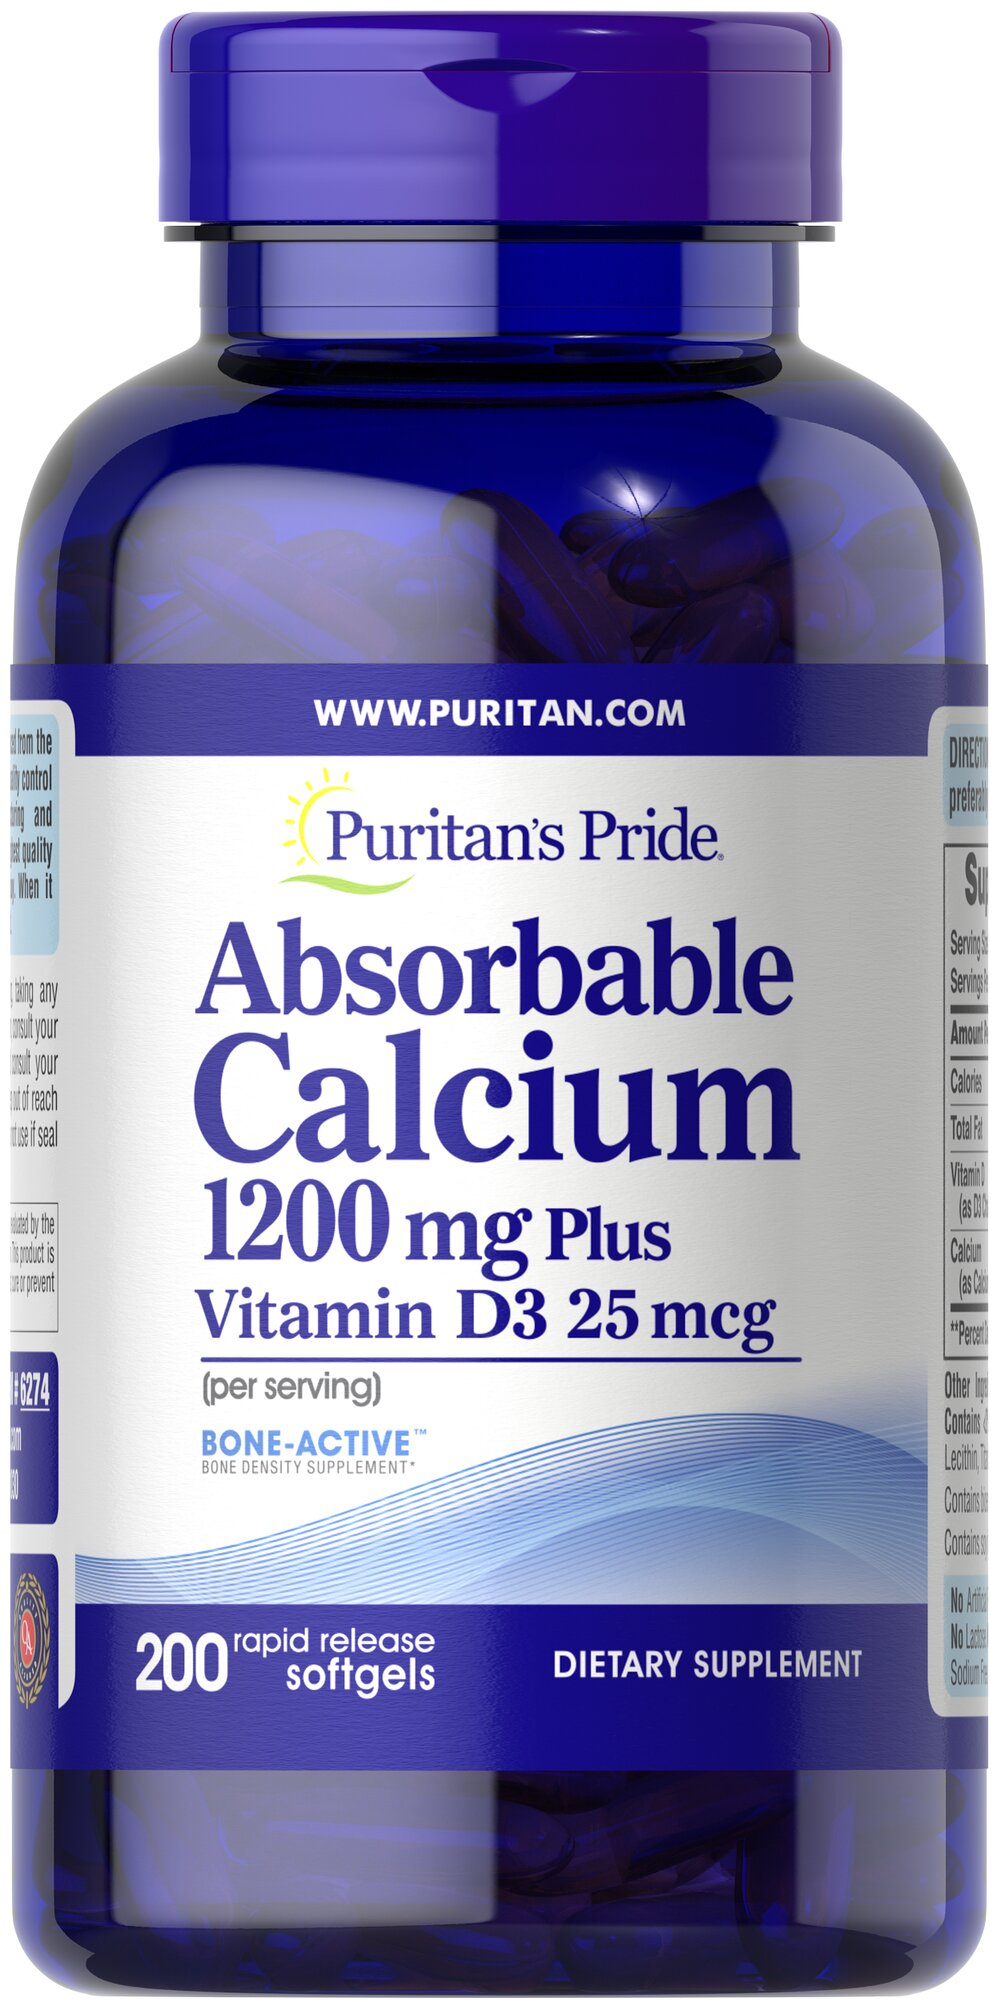 Absorbable Calcium 1200 mg with Vitamin D 1000 IU <p>Finally, a liquid Calcium supplement in a convenient softgel form! Less than 30 minutes after ingestion, each rapid dissolving softgel releases pre-dissolved liquid Calcium. Plus, each softgel is fortified with Vitamin D. Calcium and Vitamin D help maintain healthy bones in adults.**</p> 200 Softgels 1200 mg/1000 IU $17.99